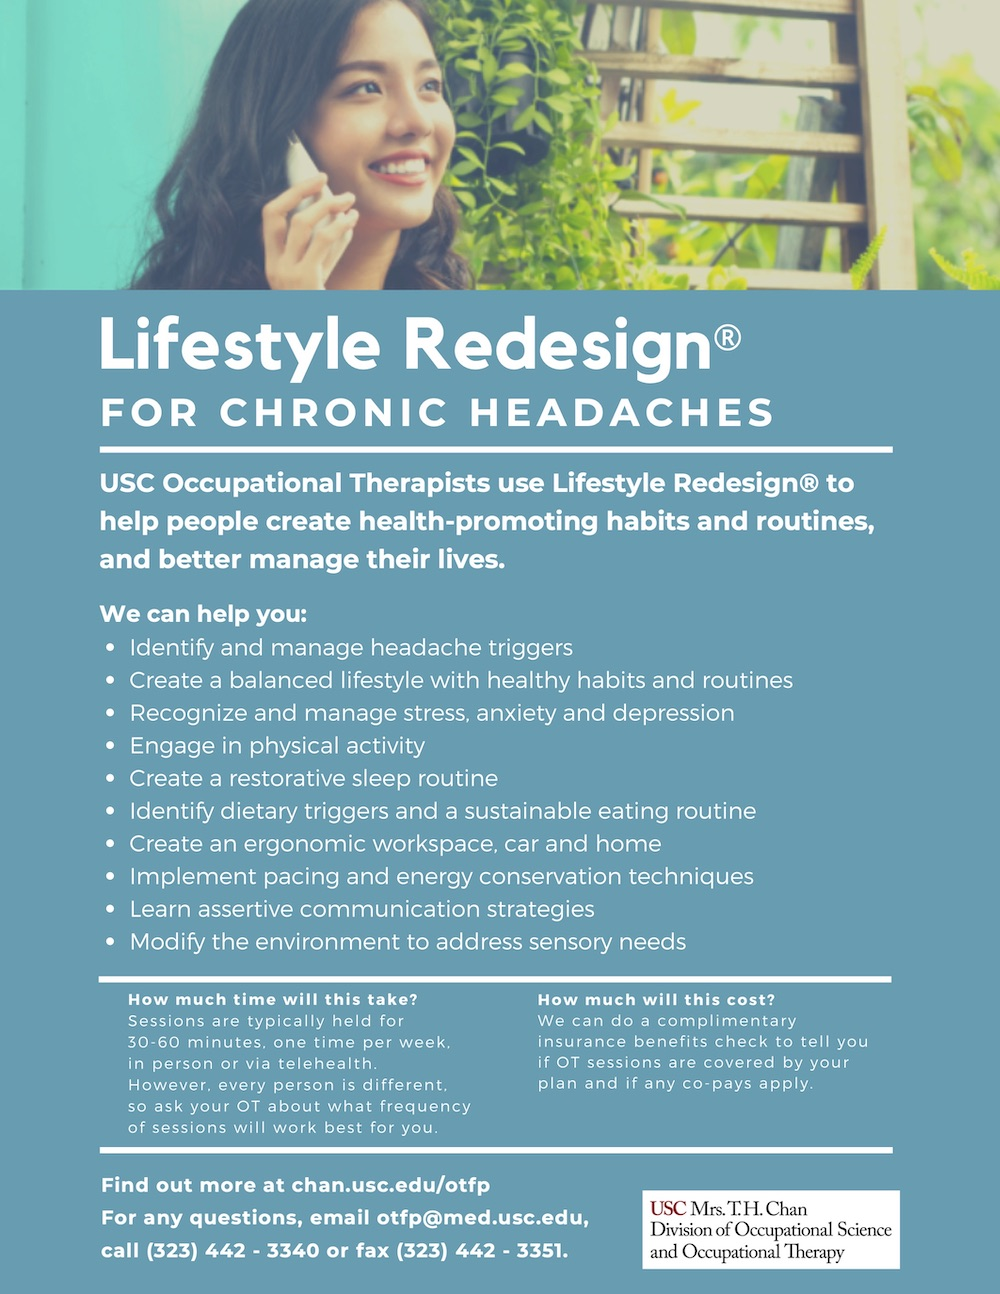 Lifestyle Redesign for Chronic Headaches